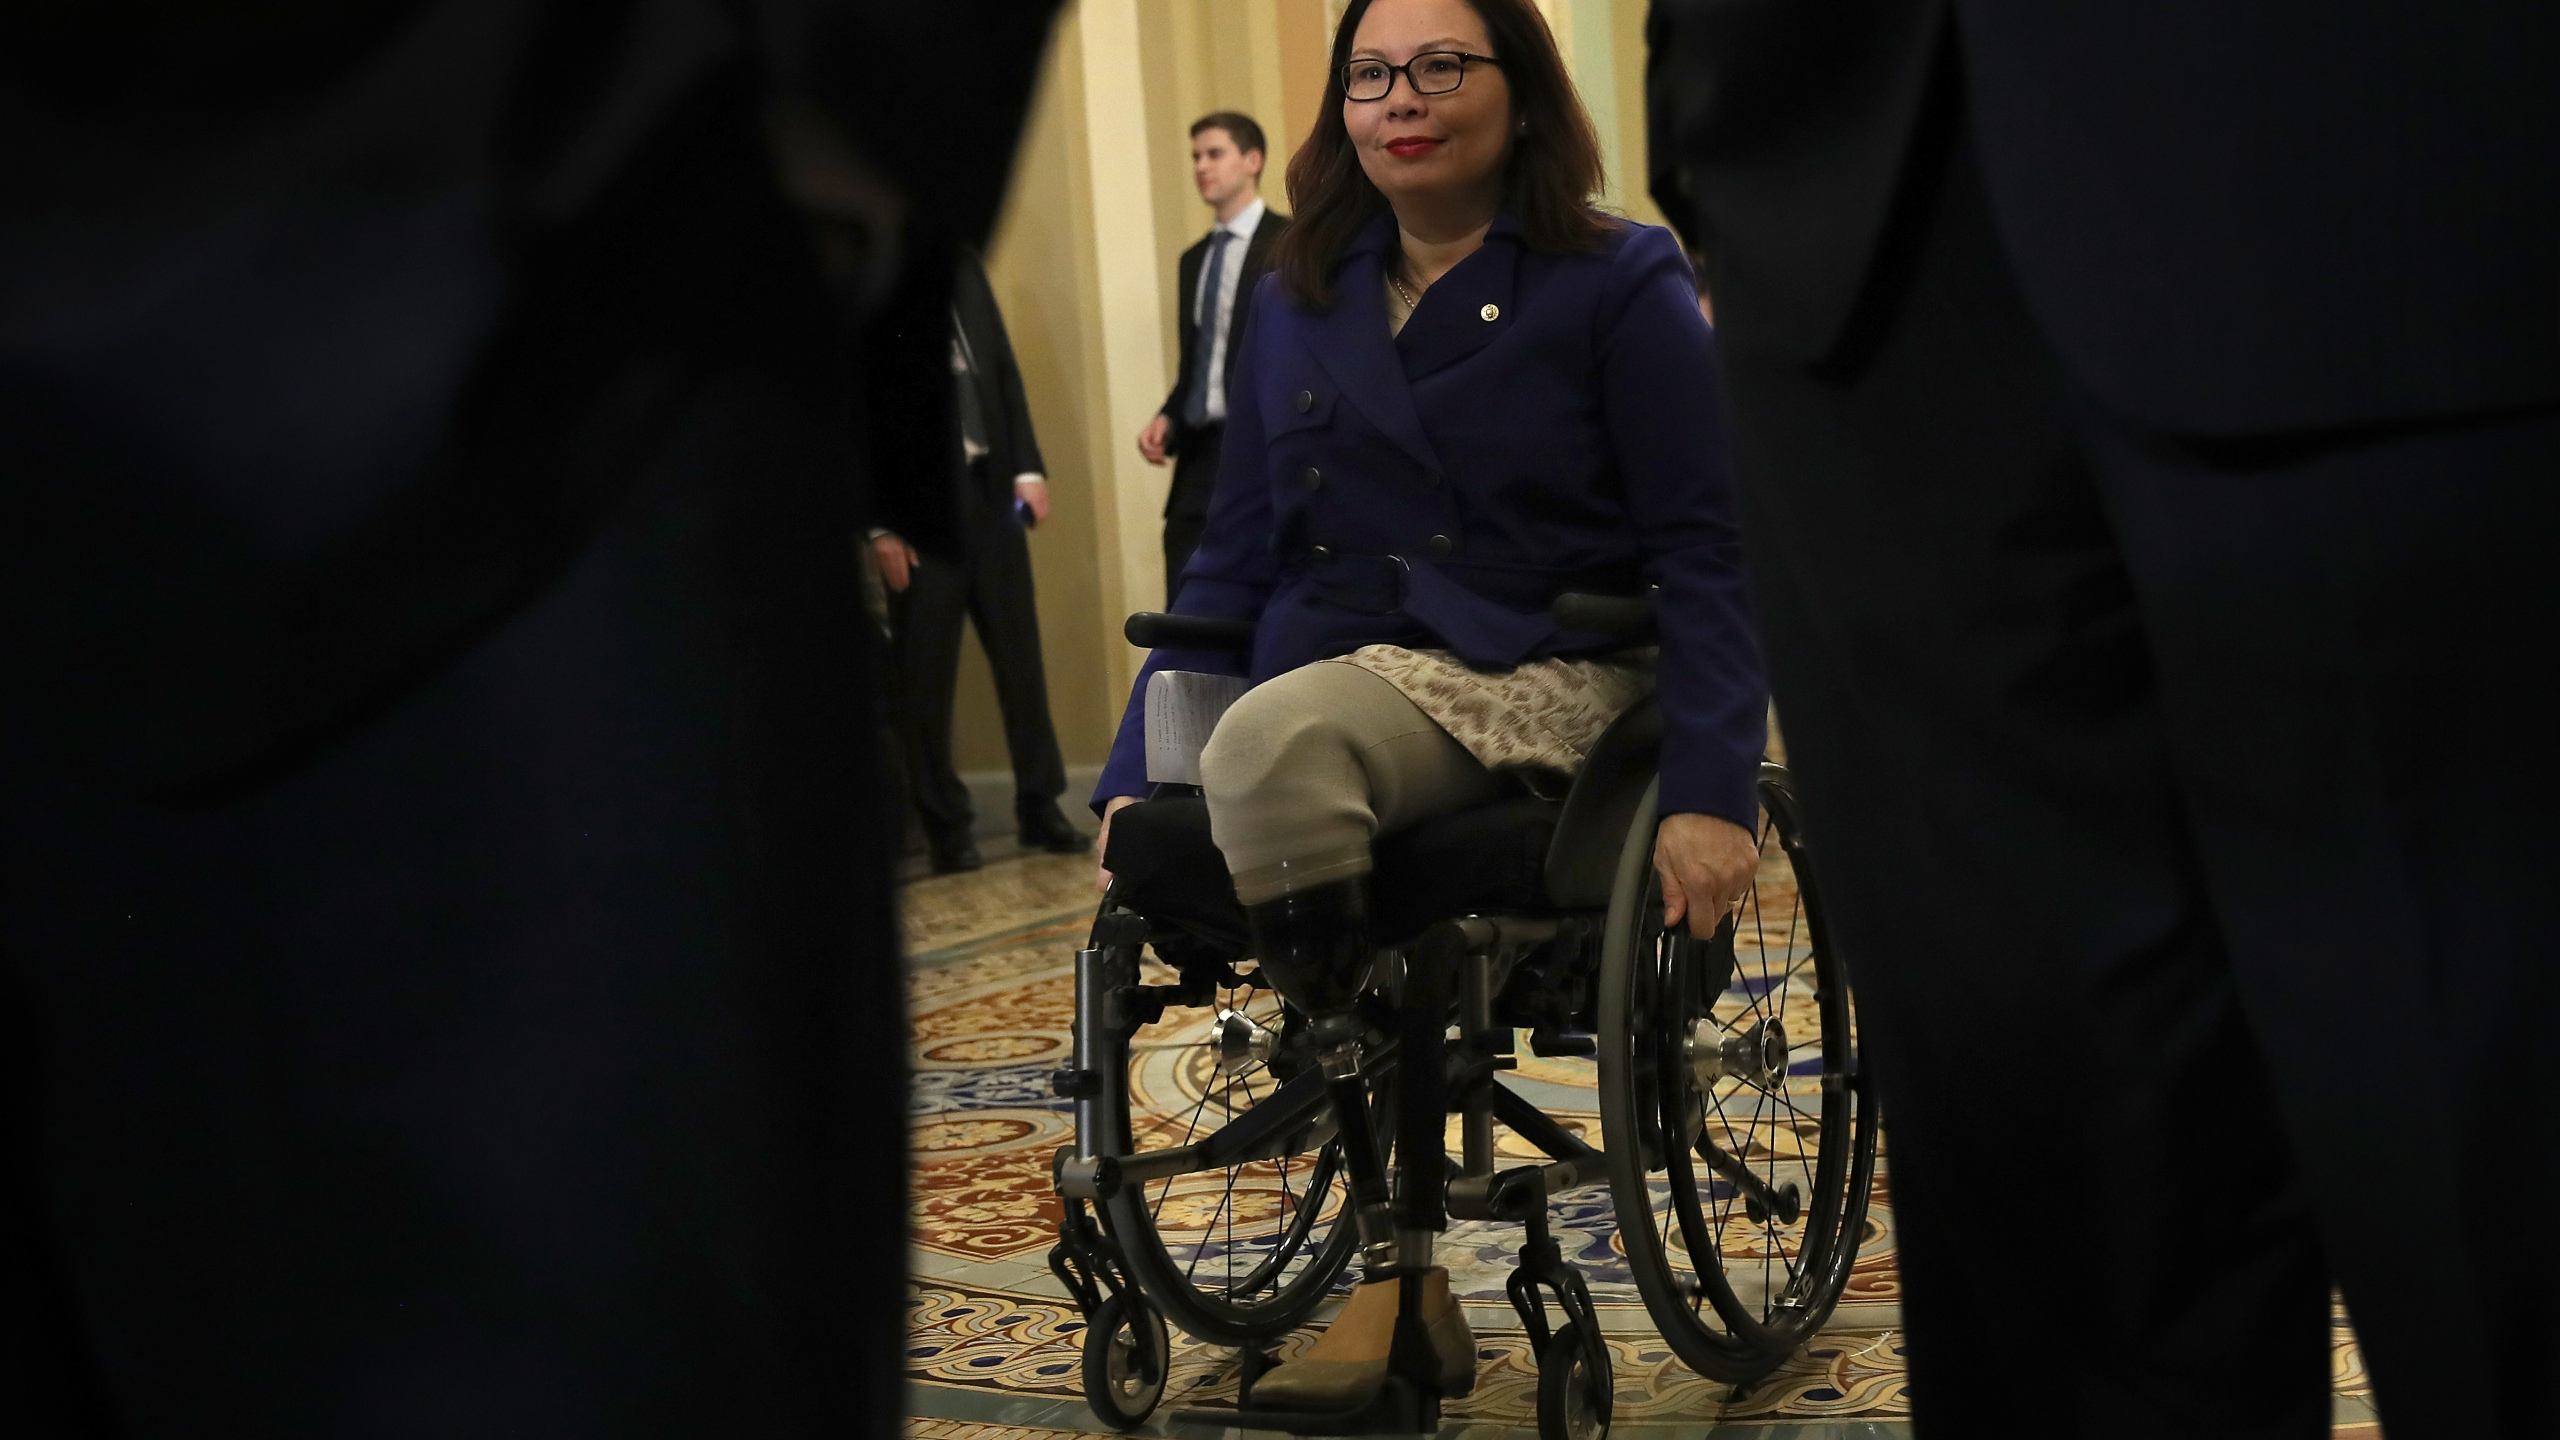 Sen. Tammy Duckworth arrives for a press conference with Democratic leaders following the Democratic policy luncheon in Washington, DC, on Jan. 29, 2019. (Credit: Win McNamee / Getty Images)